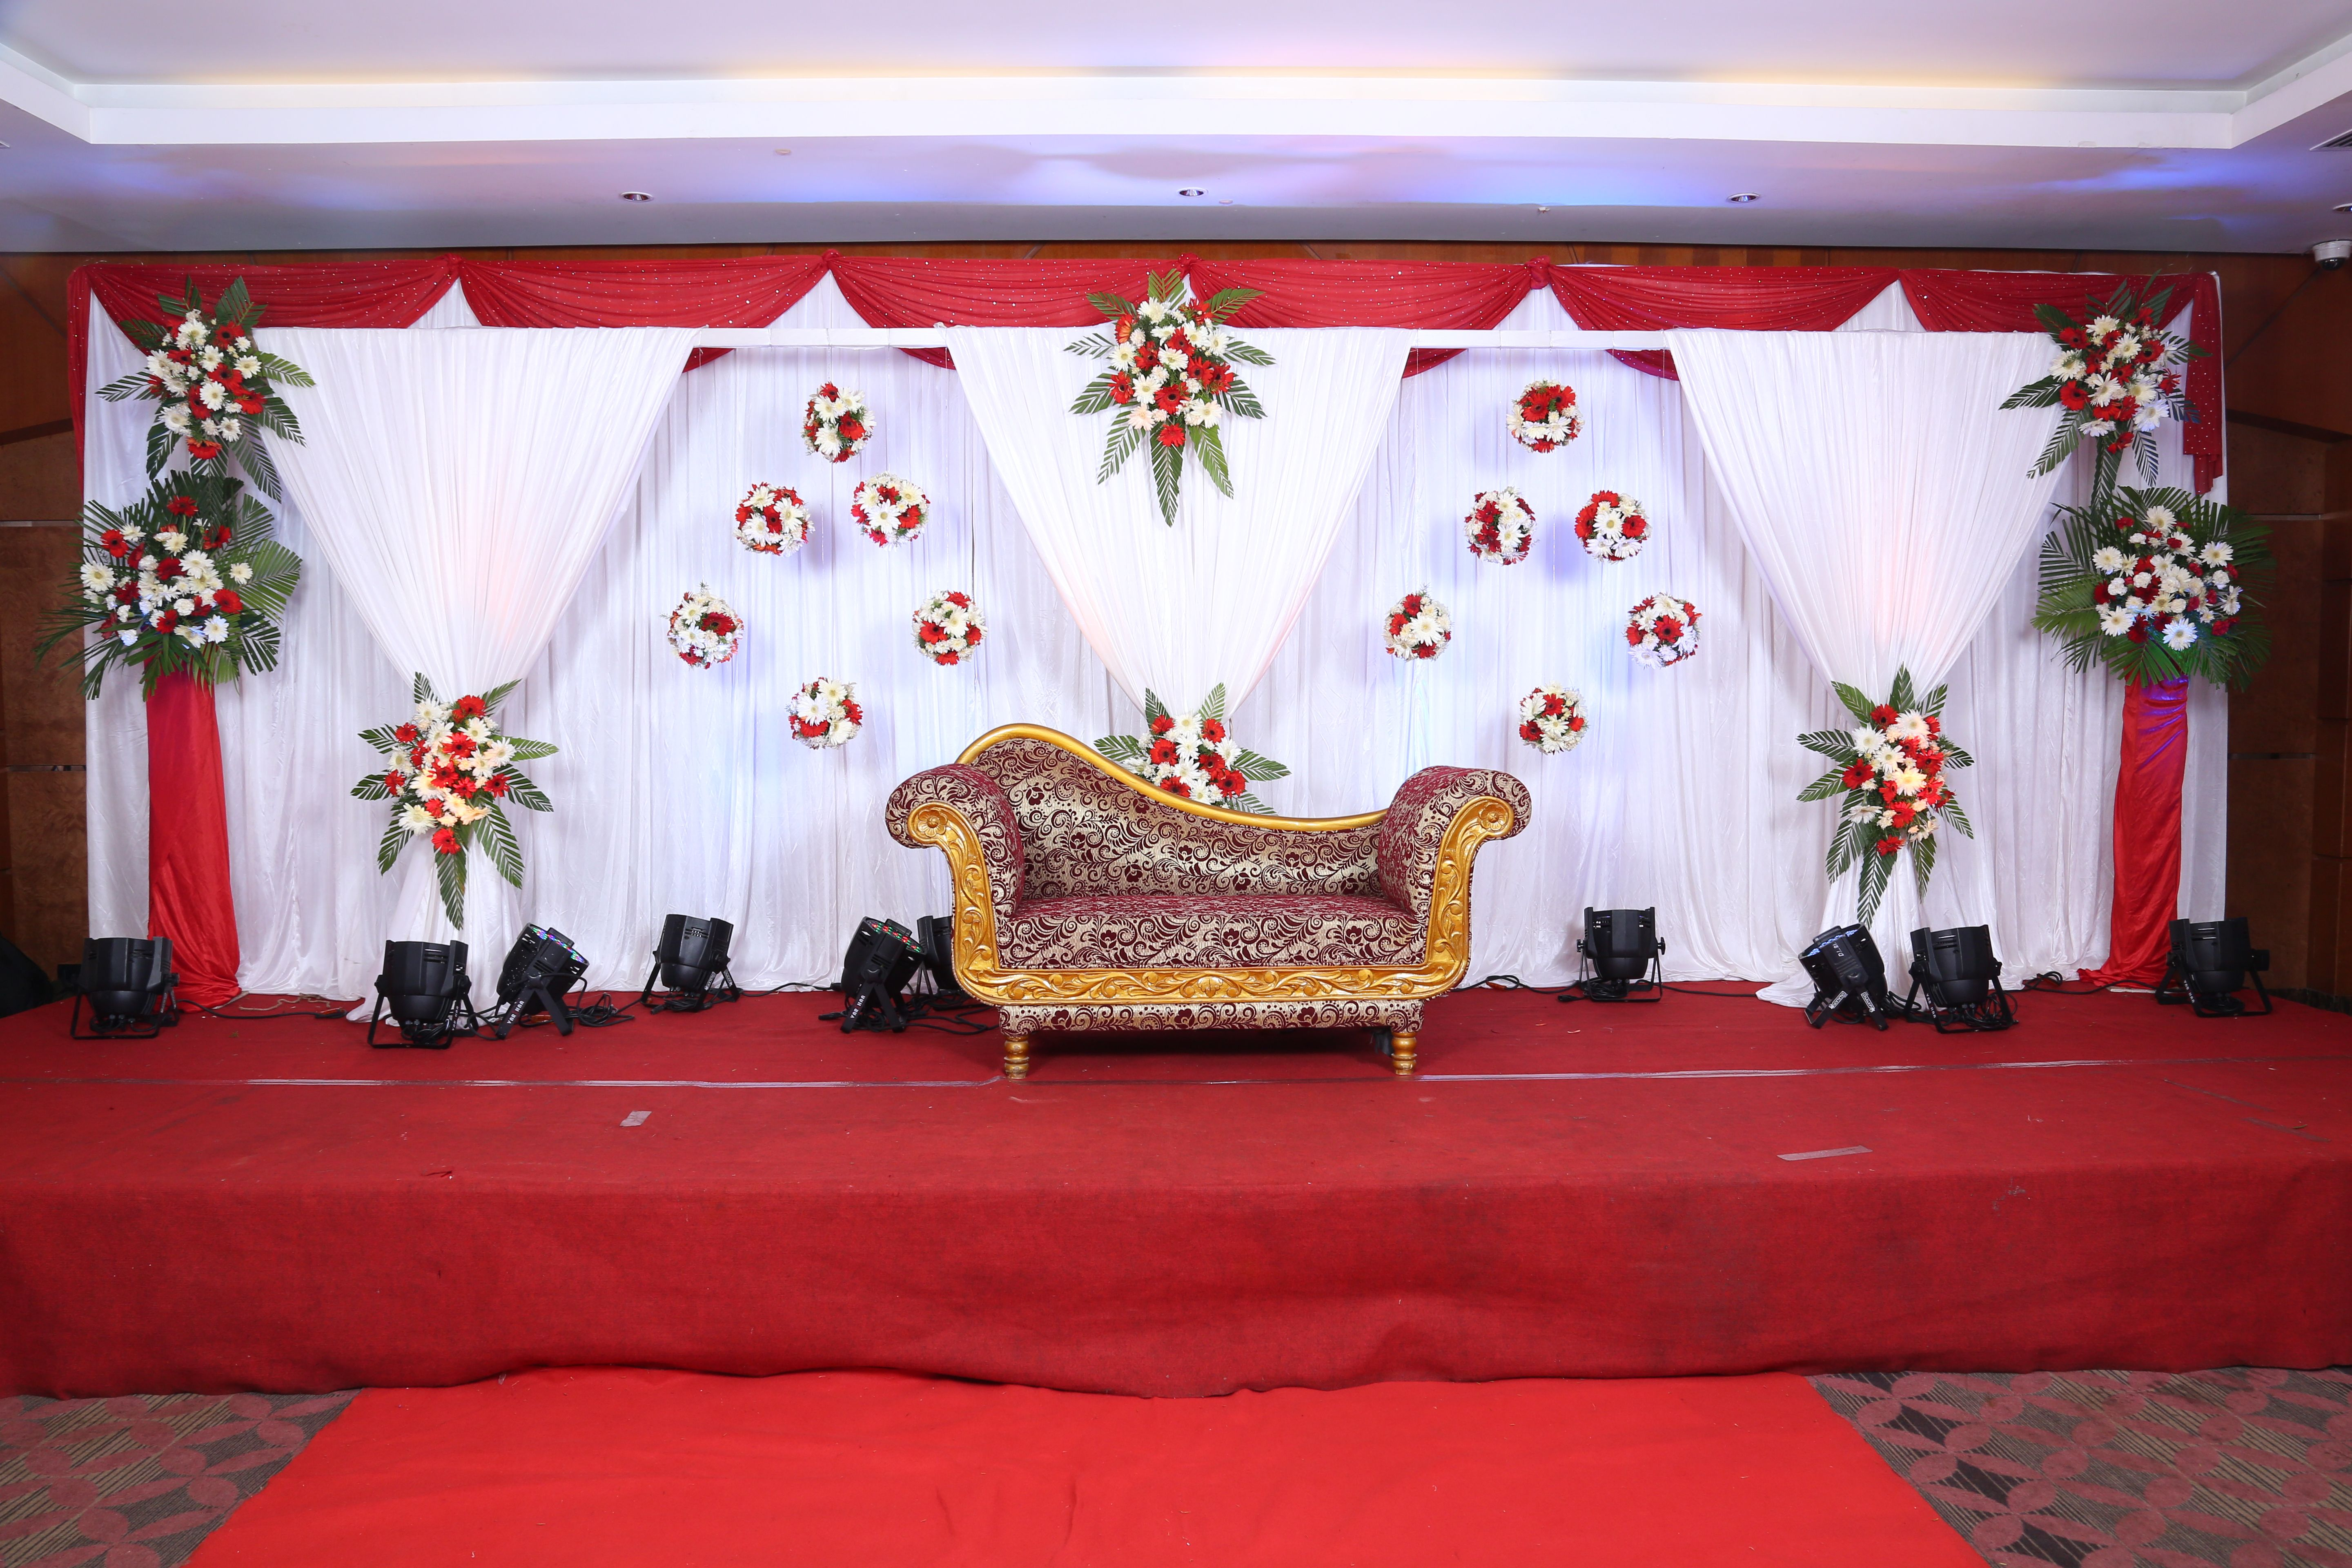 Wedding reception decor by bonding decors at hablis hotel chennai wedding reception decor by bonding decors at hablis hotel chennai enquire at bigfday to junglespirit Image collections